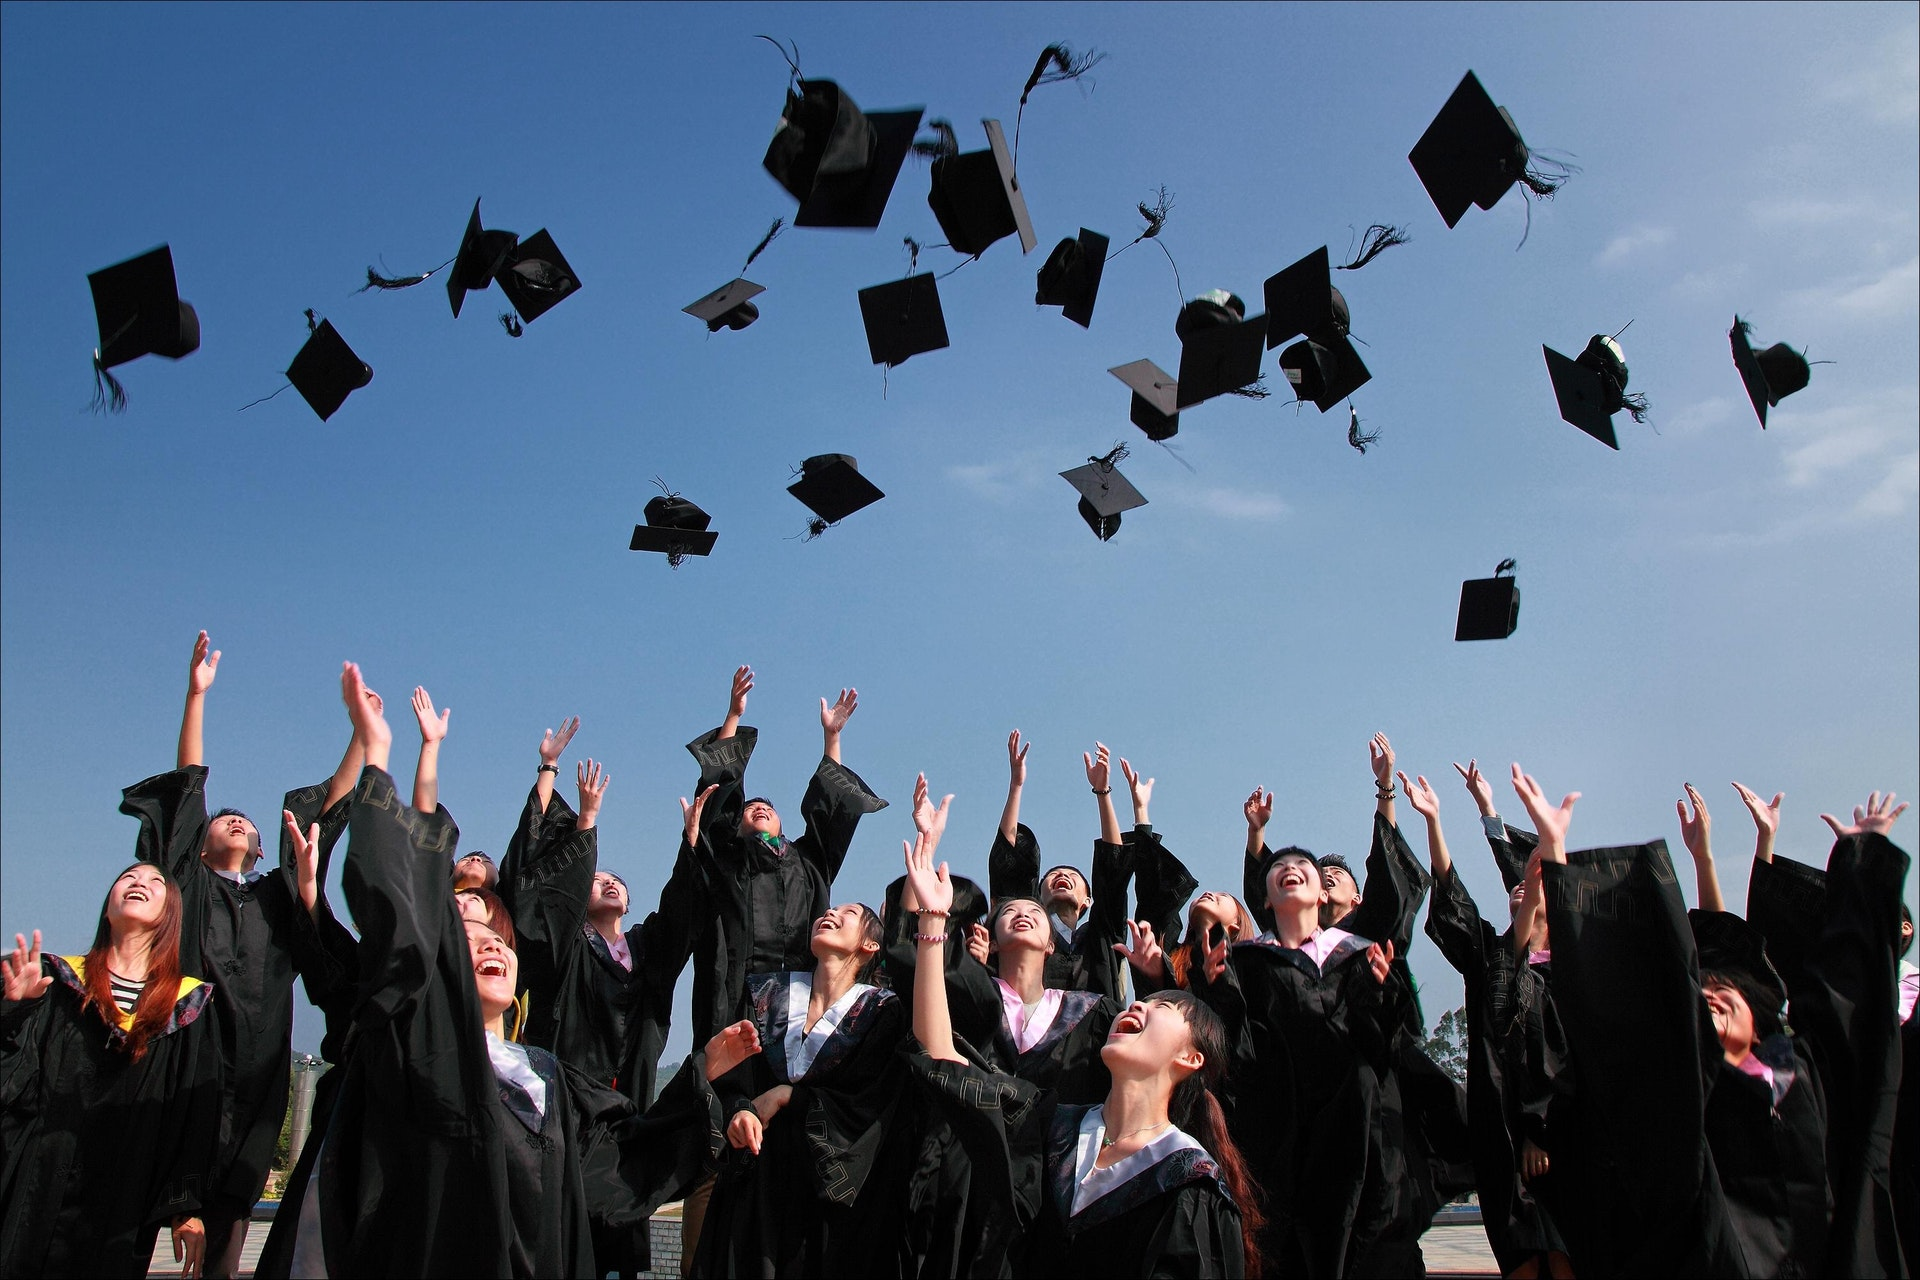 Tips for Graduation Photography